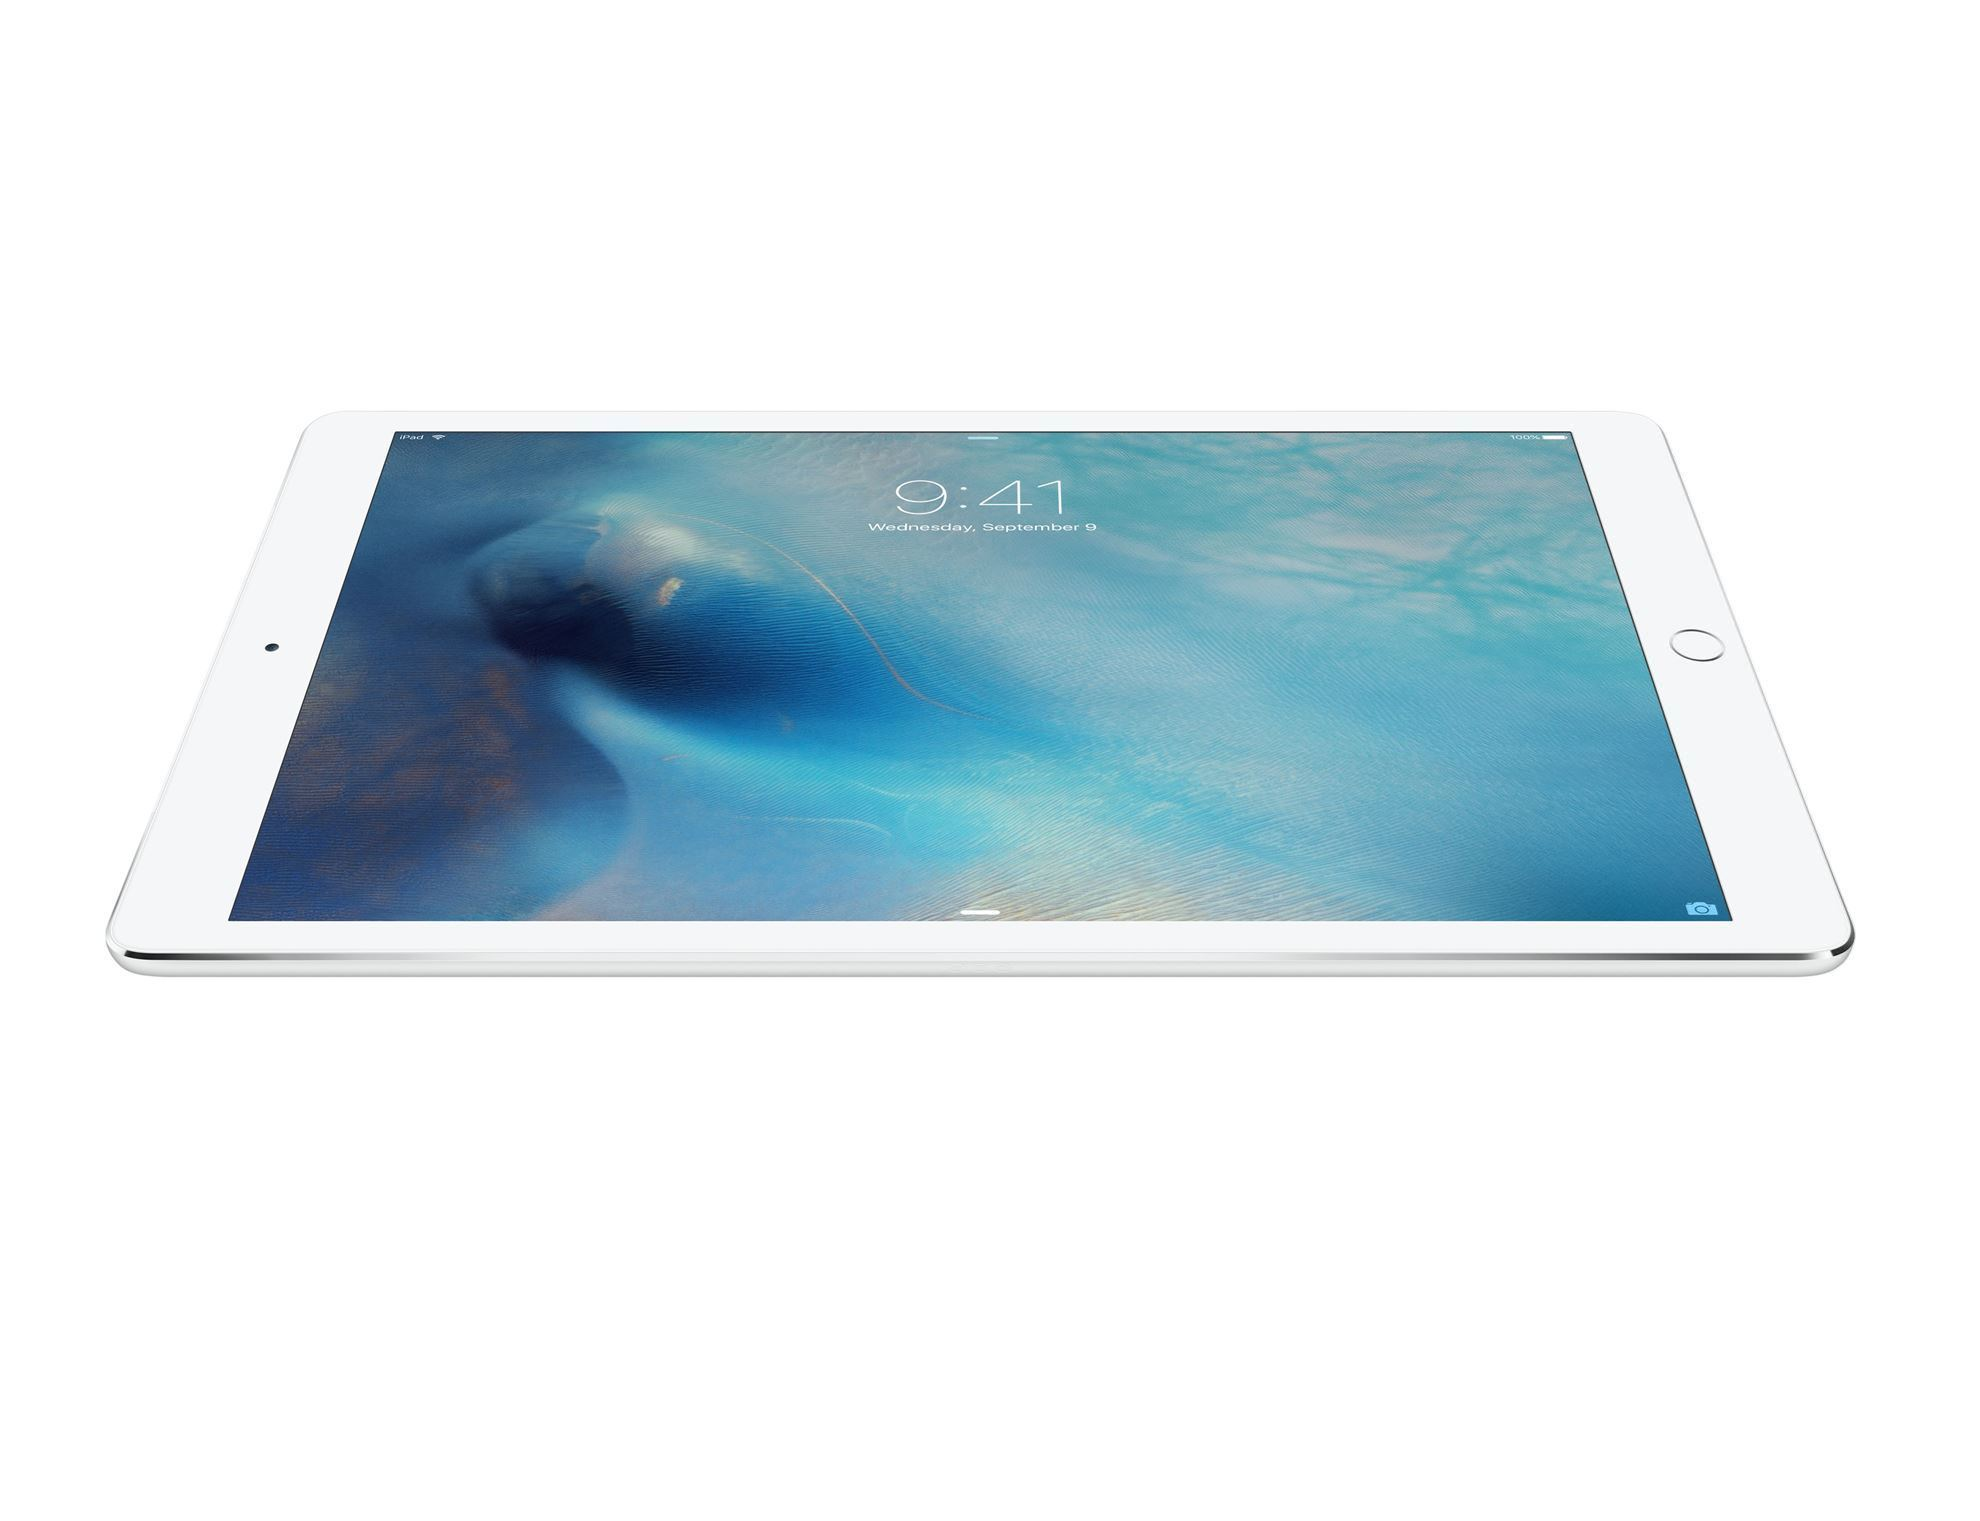 Picture of iPad Pro 12.9-inch 256GB WiFi only